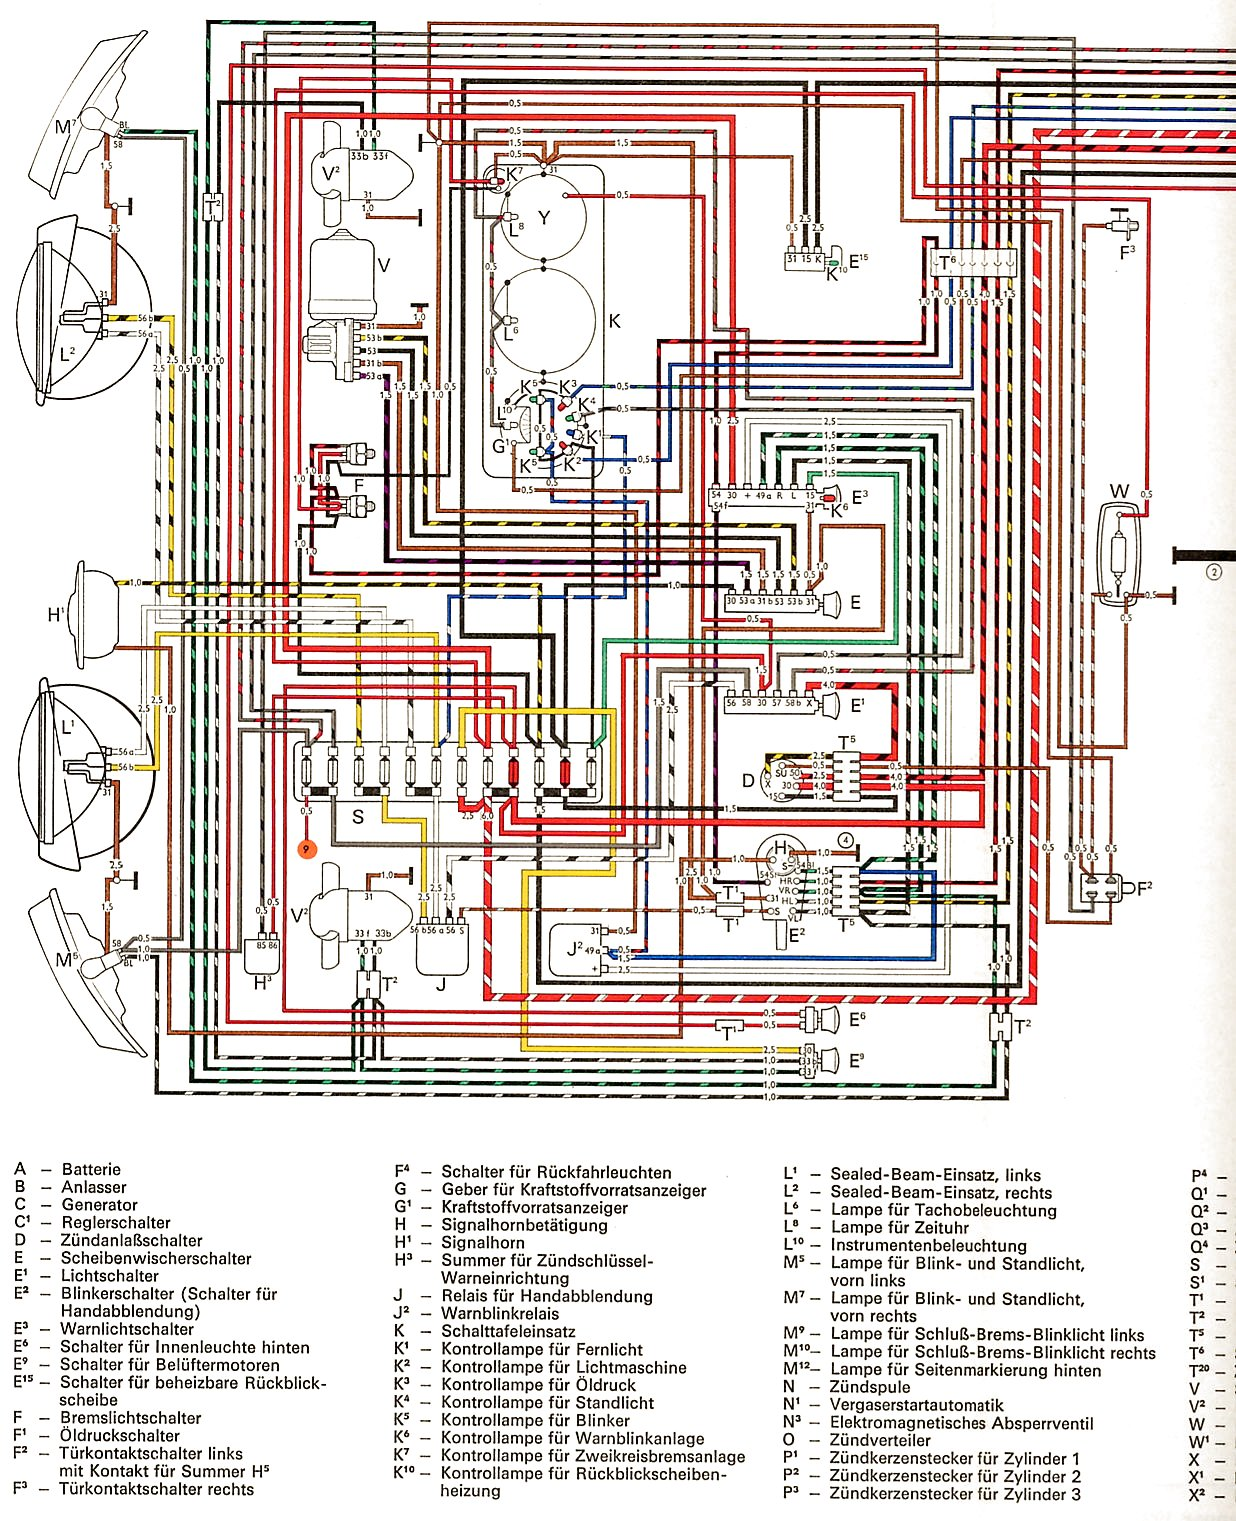 71 chevelle wiring diagram 26 wiring diagram images 1969 chevelle  alternator wiring diagram 1972 chevelle engine